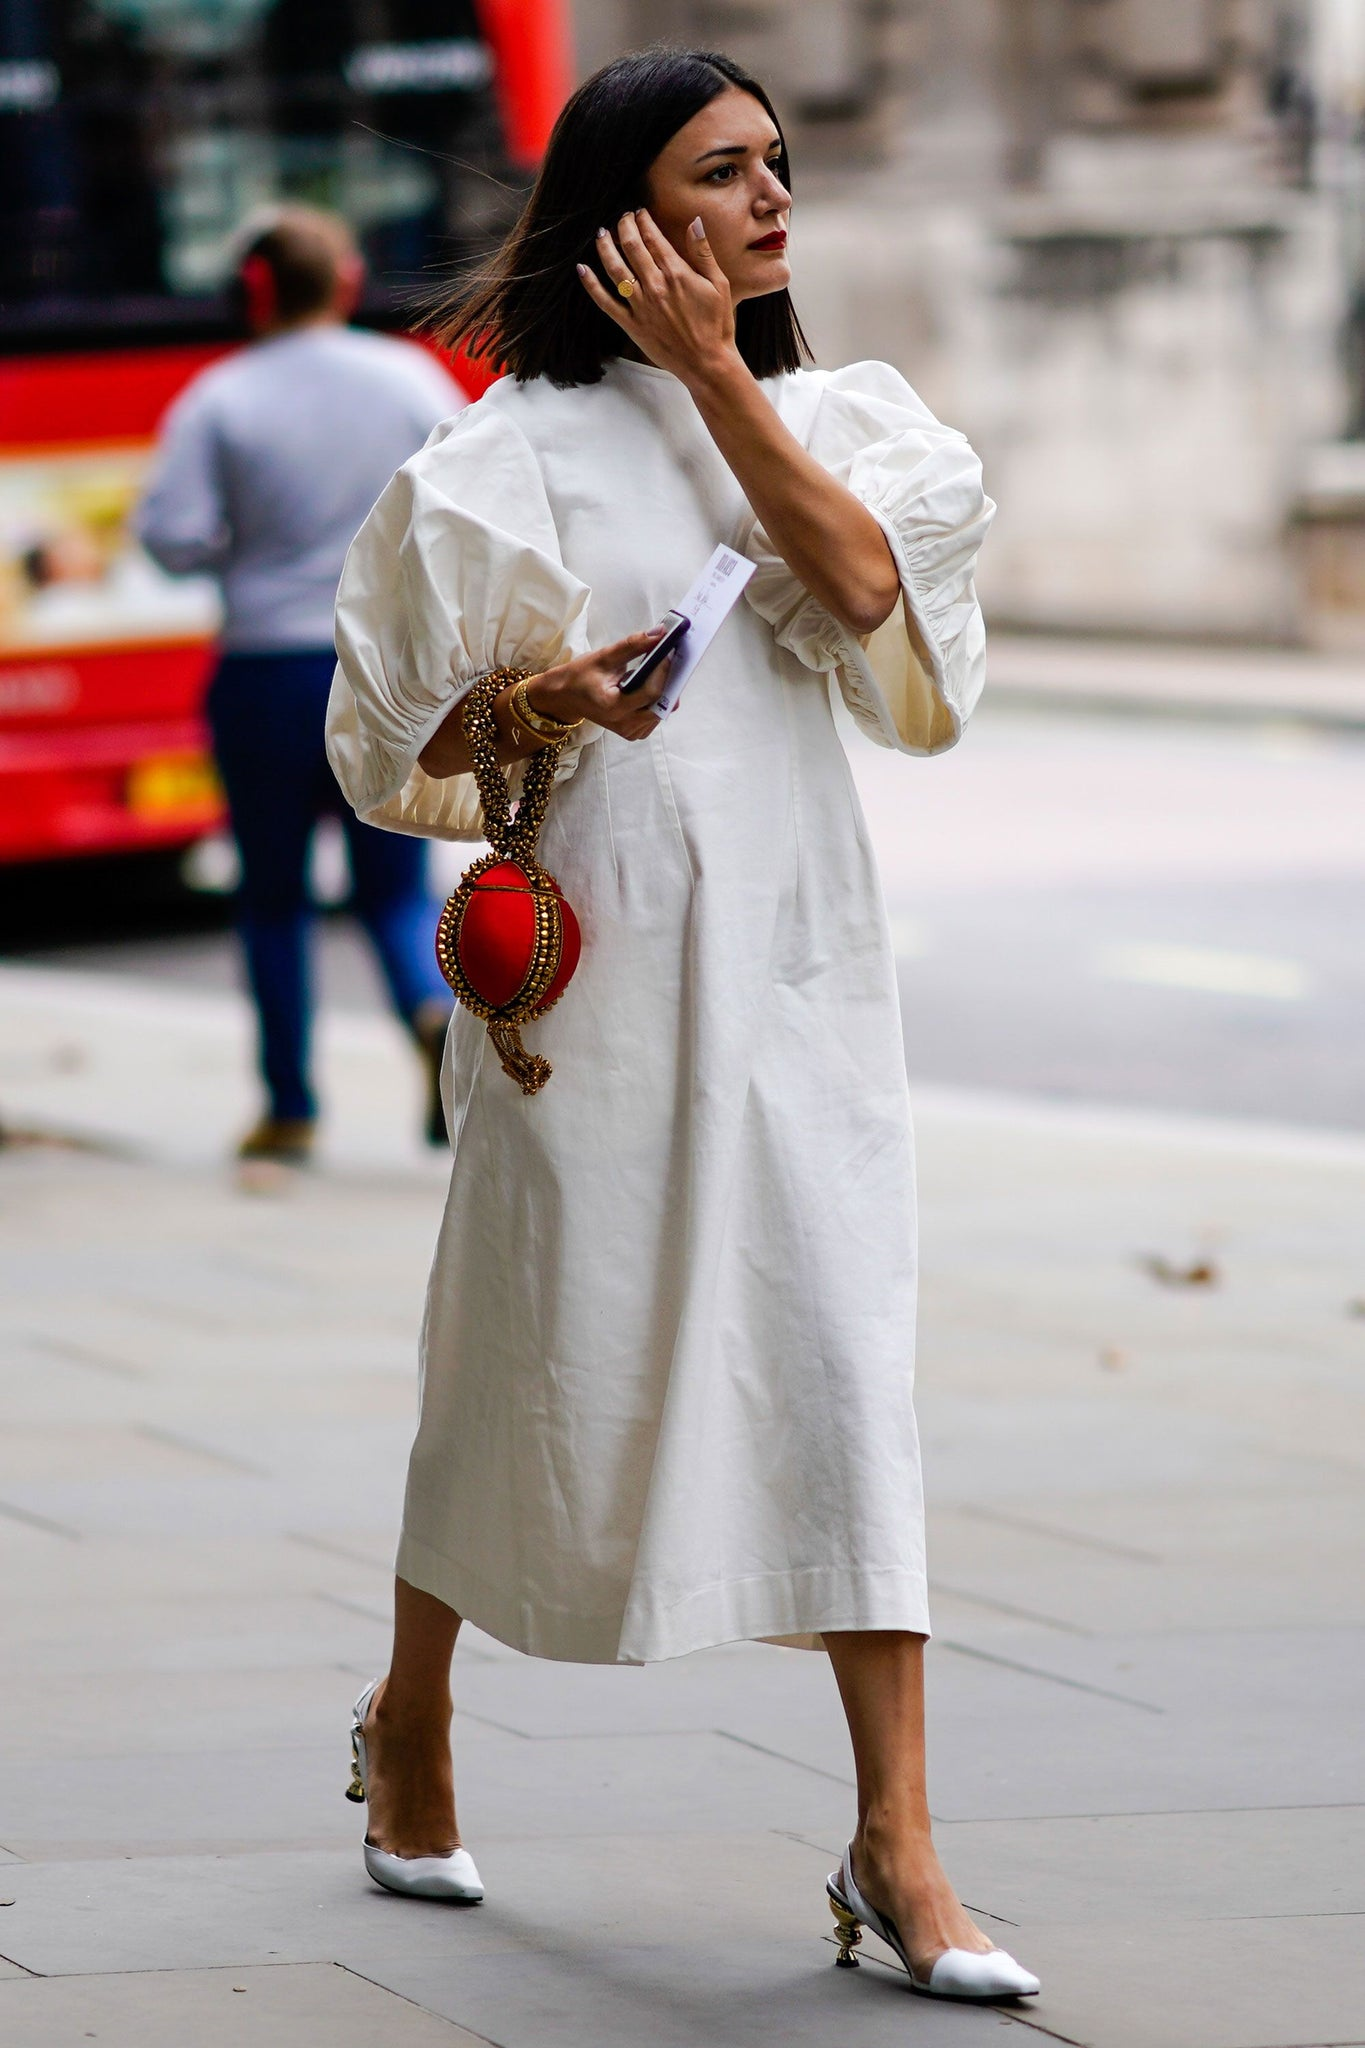 The Best Street Style Details Of London Fashion Week SS19 Anisa Sojka spotted at London Fashion Week wearing the fiery Red Babi Bracelet Clutch Bag. Photographed by David Nyanzi. Mae Cassidy Gold clutch bag street style LFW clutch bag red gold handbag occasionwear streetstyle with a white balloon sleeve EDIT dress and white Yuul Yie leather sling back Harper's Bazaar unusual dainty accesories make all the difference when it comes to dressing up a simple frock